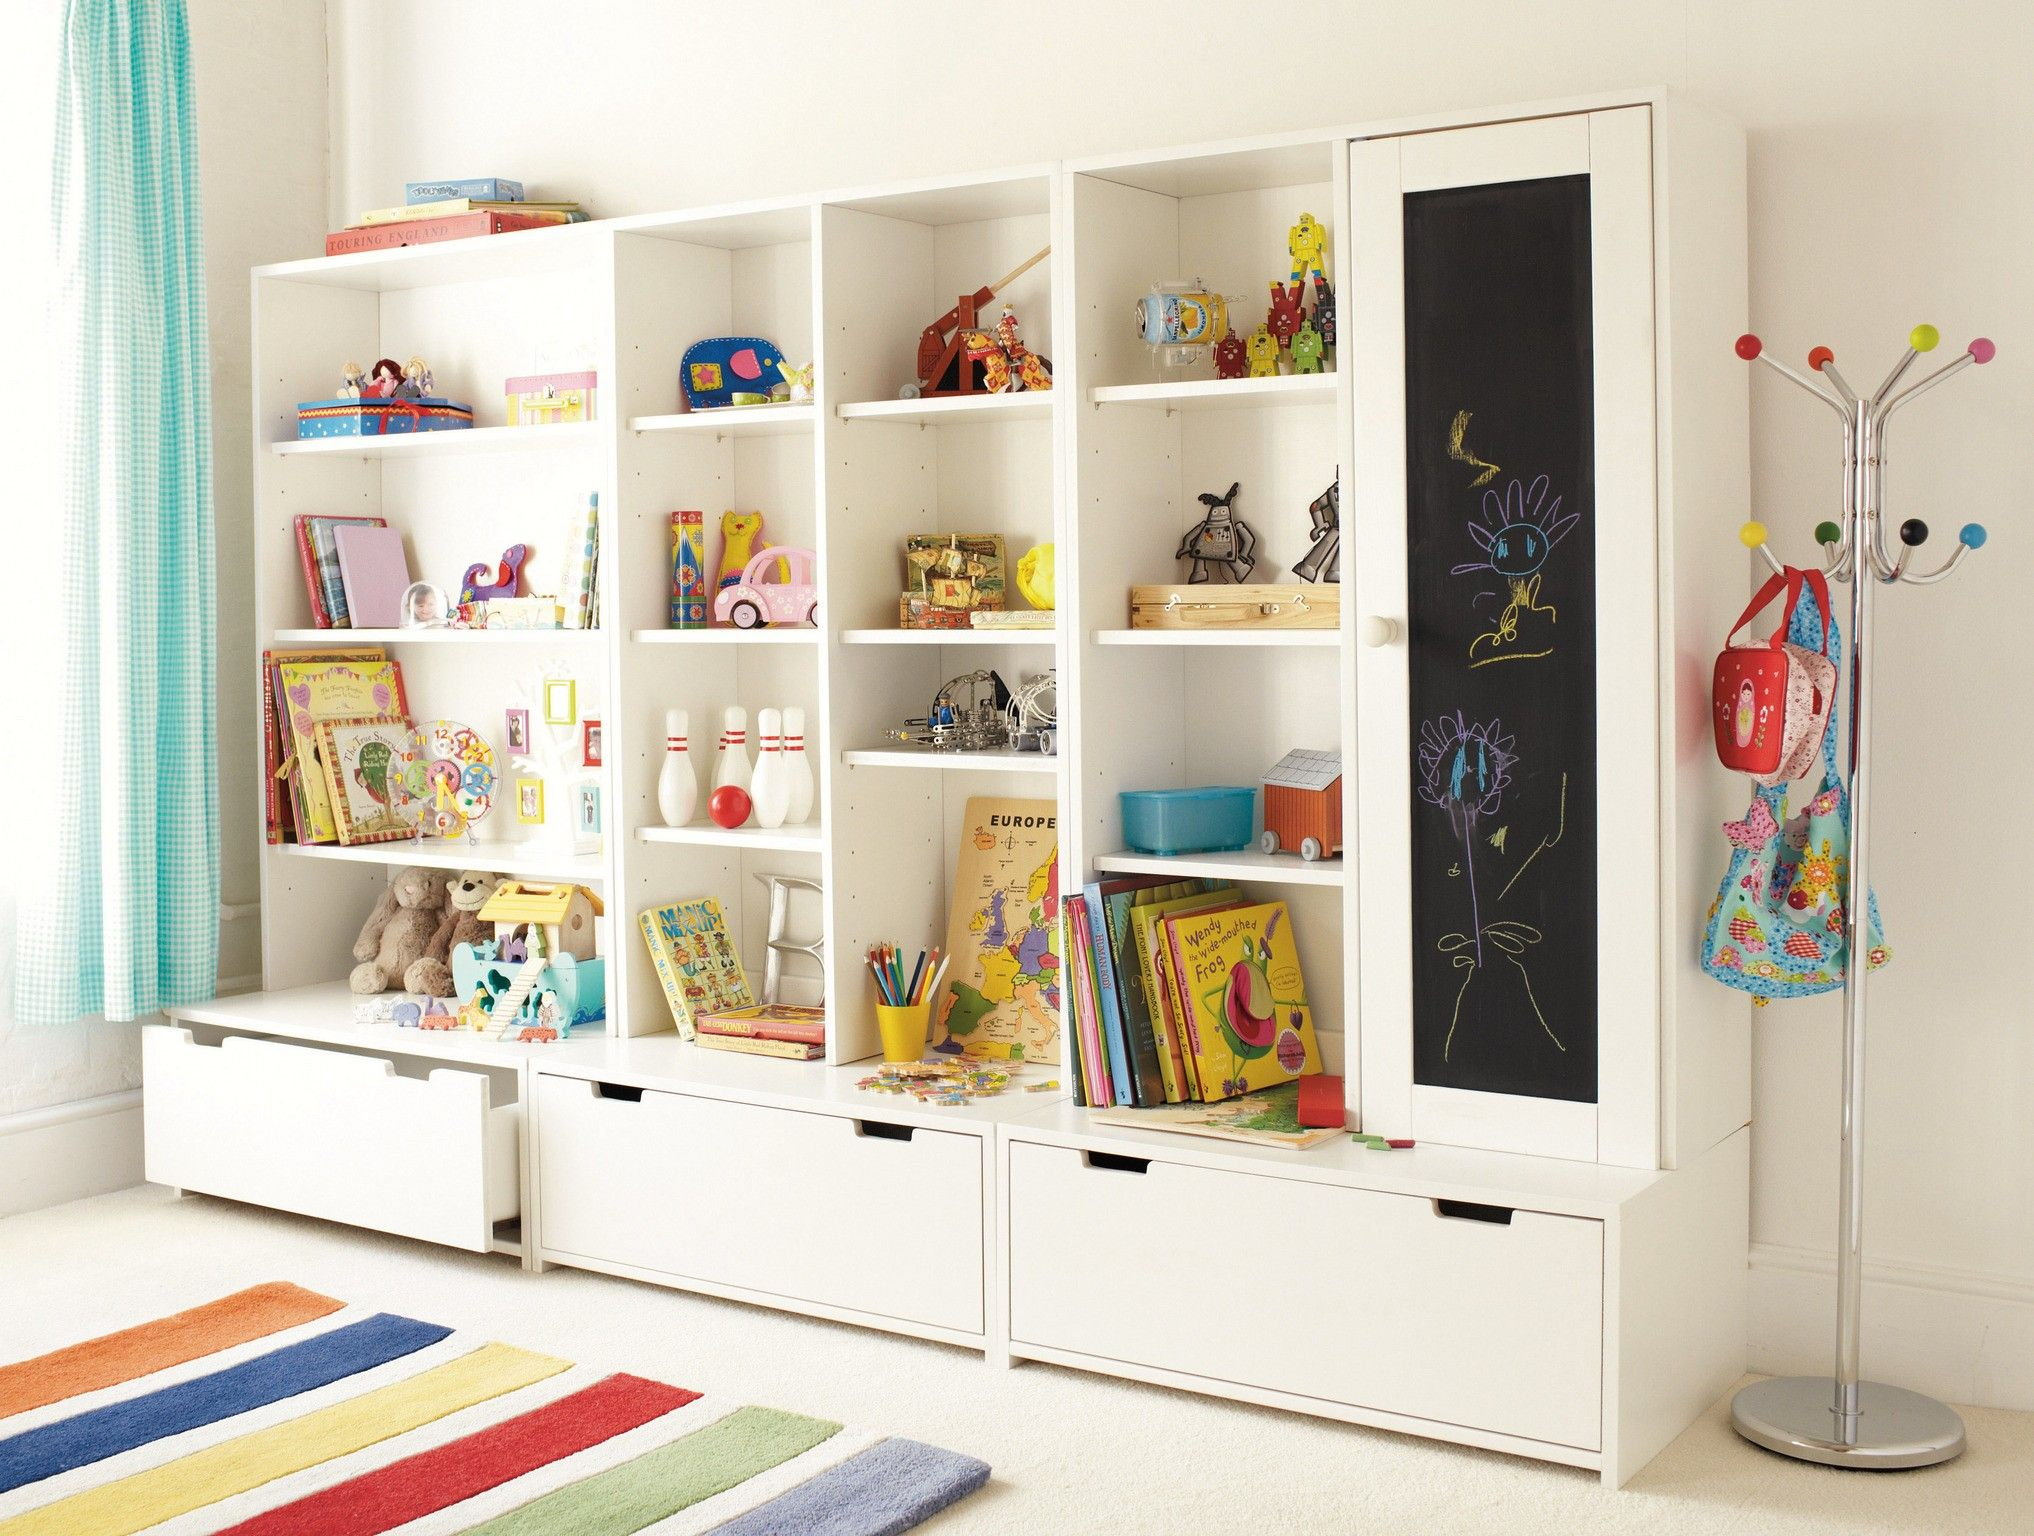 Playroom Storage Ideas Appealing Playroom Storage Ideas Design With Large White